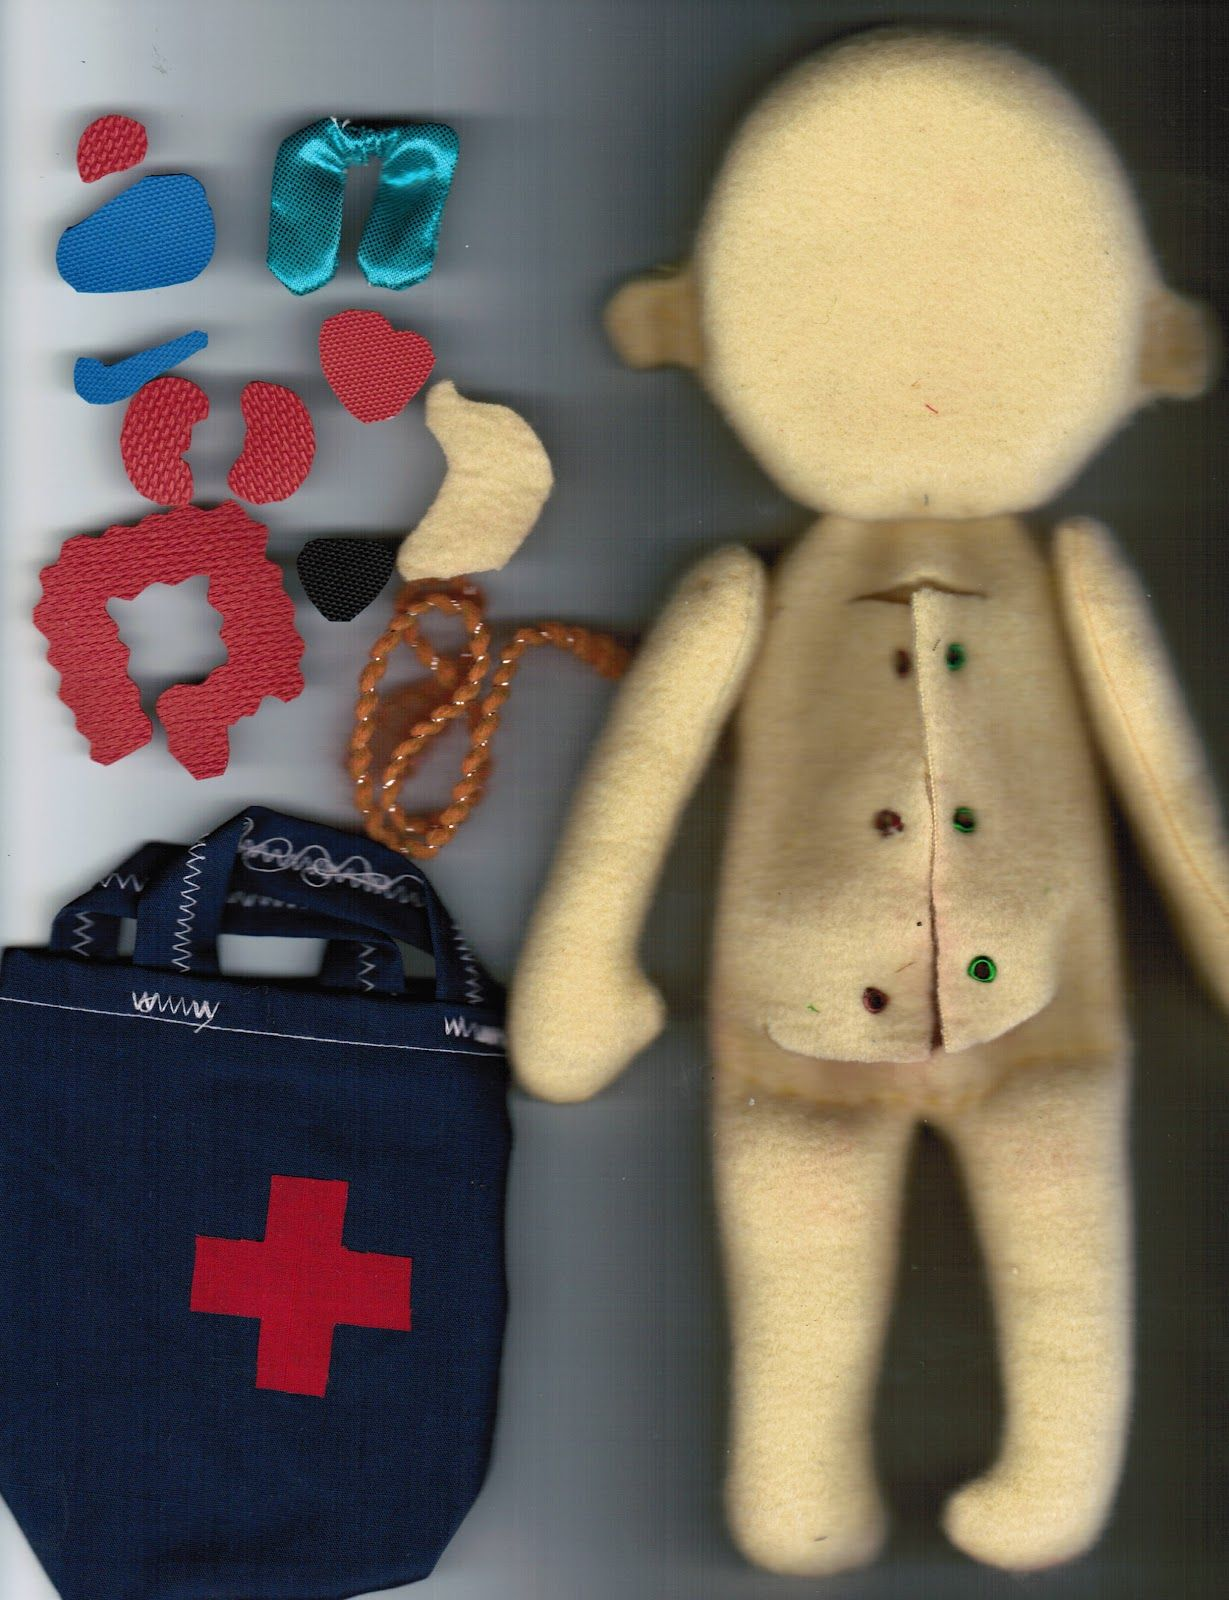 Anatomy doll with organs | For the kids | Pinterest | Dolls and Busy ...